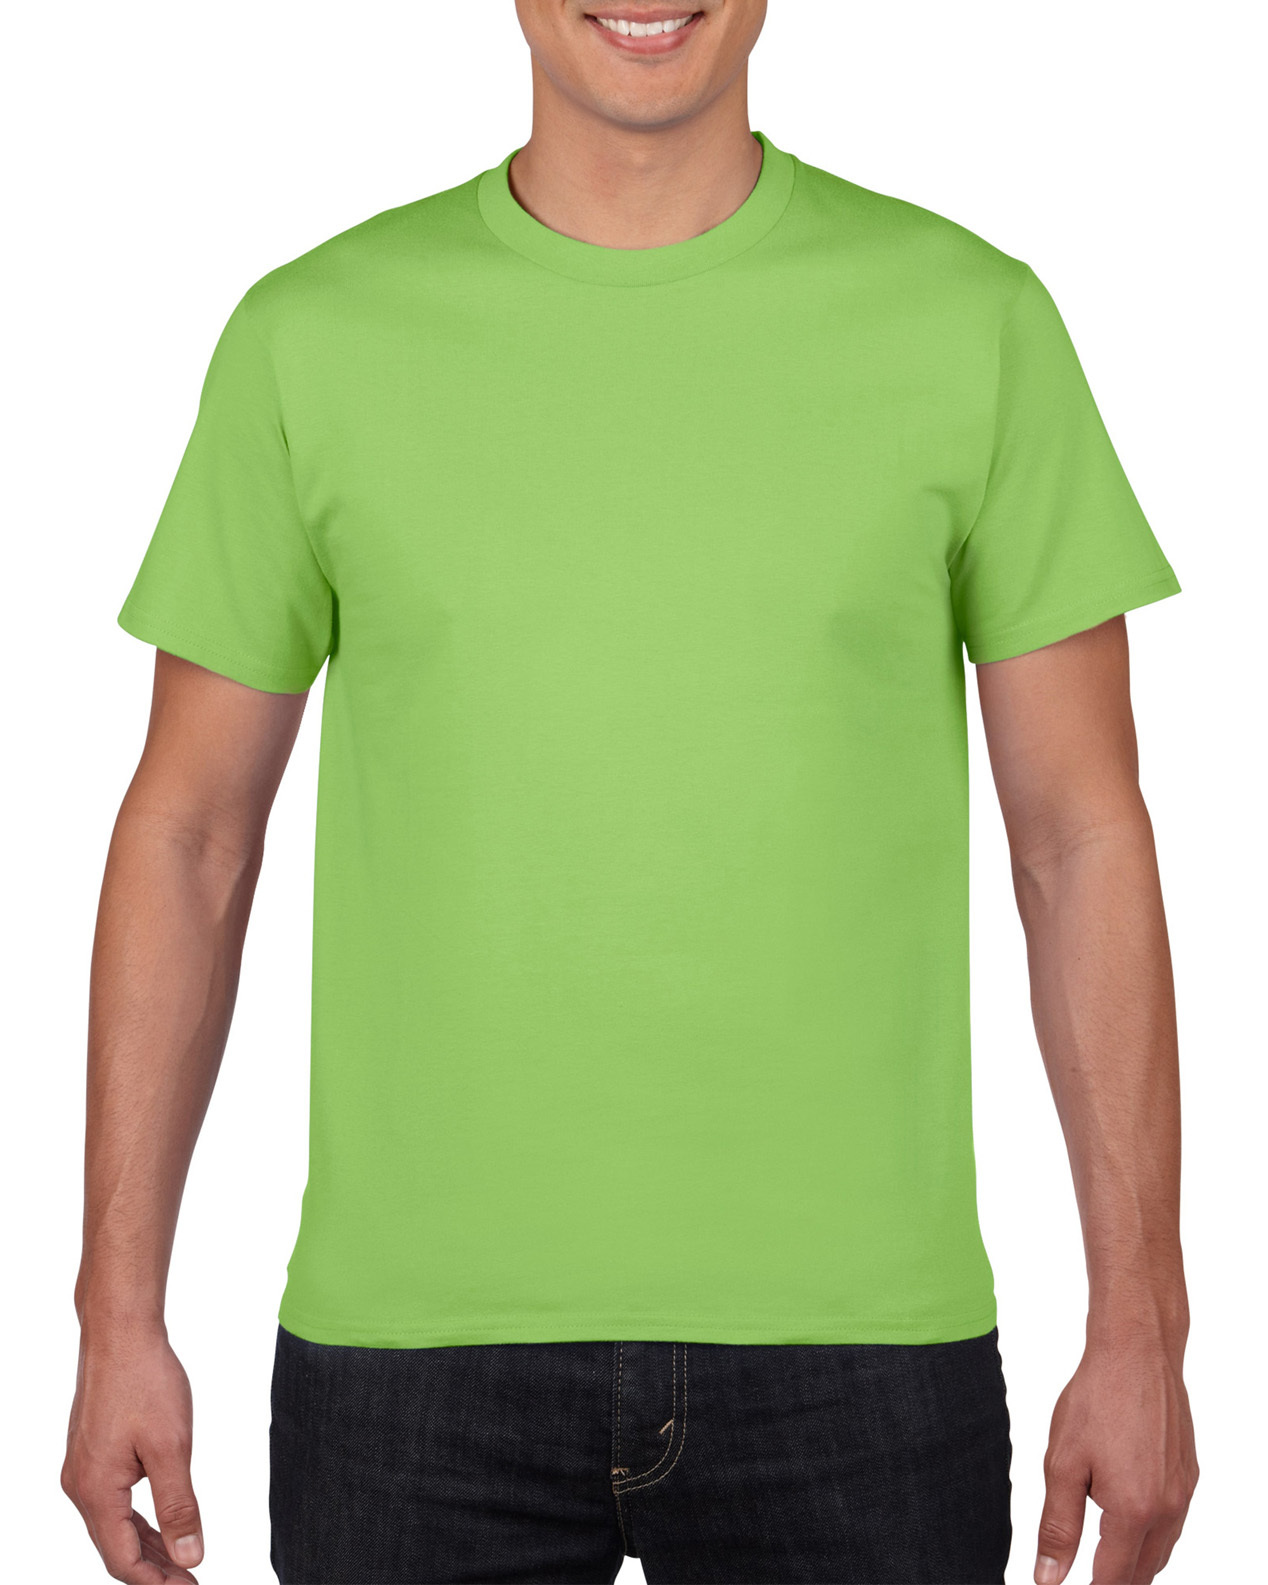 lime-front.jpg